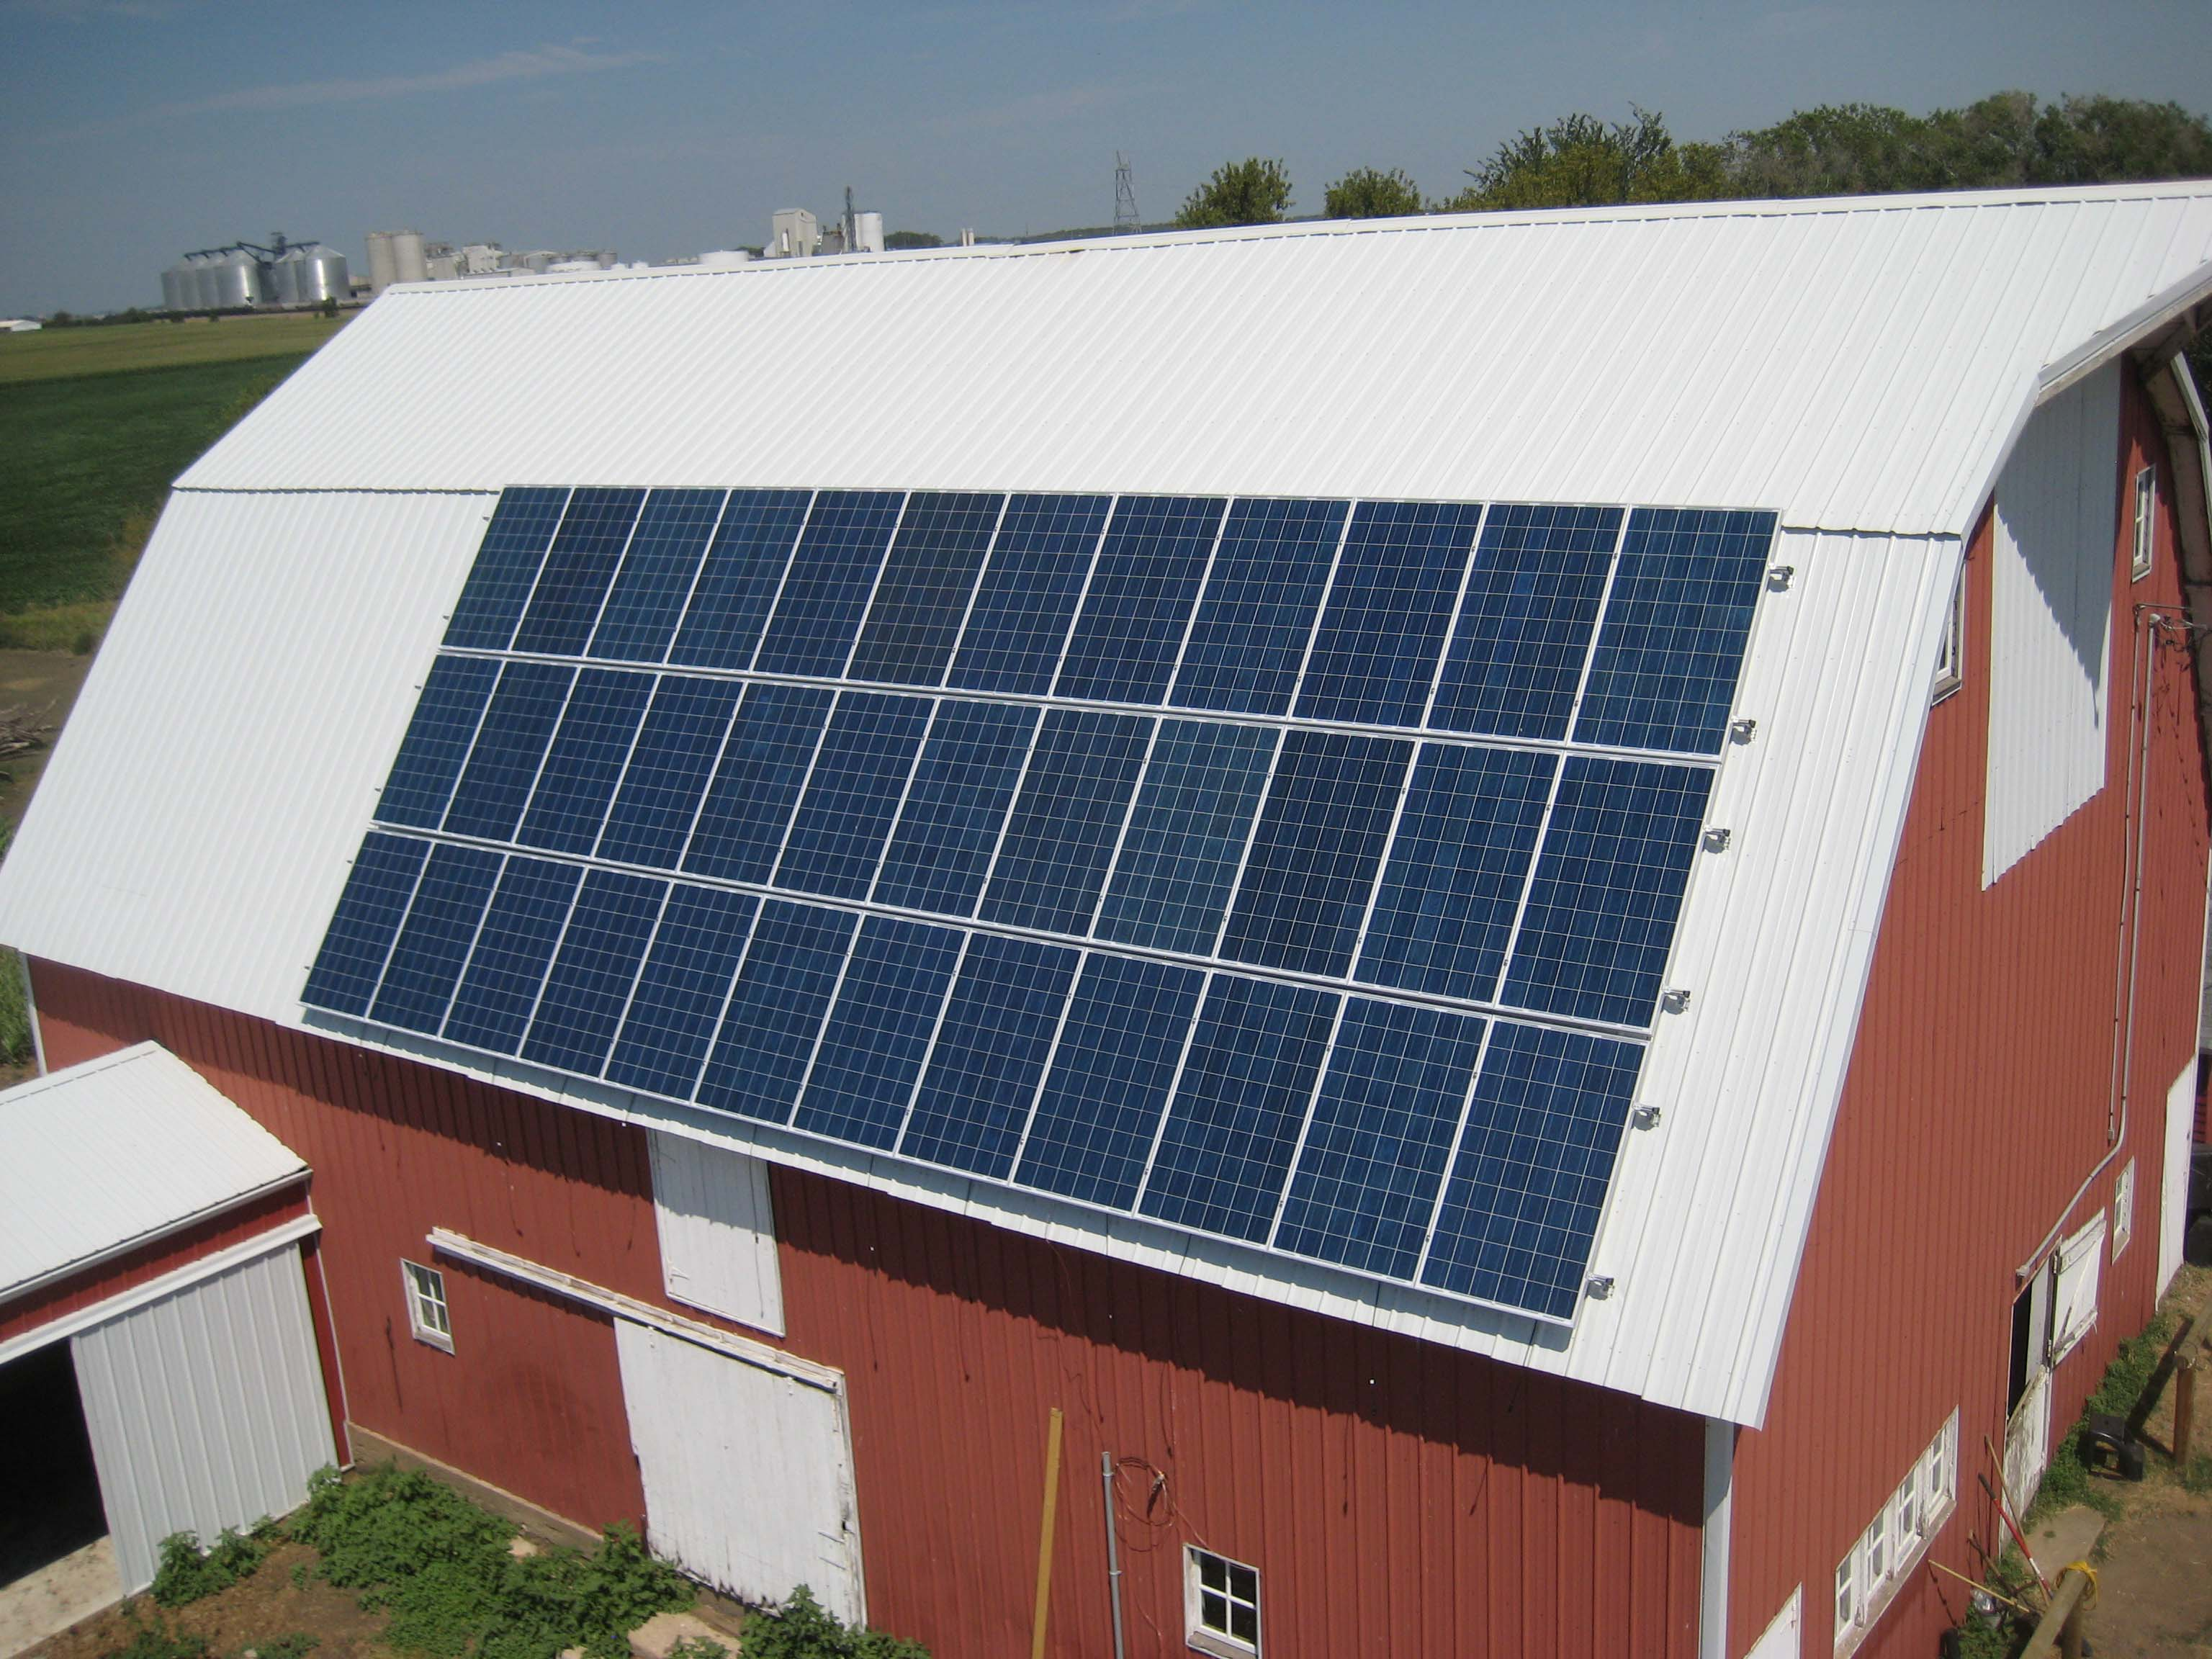 Williams Power Systems installed this 36-panel, 8.64-kilowatt solar array onto a barn. Photos courtesy Dennis Williams